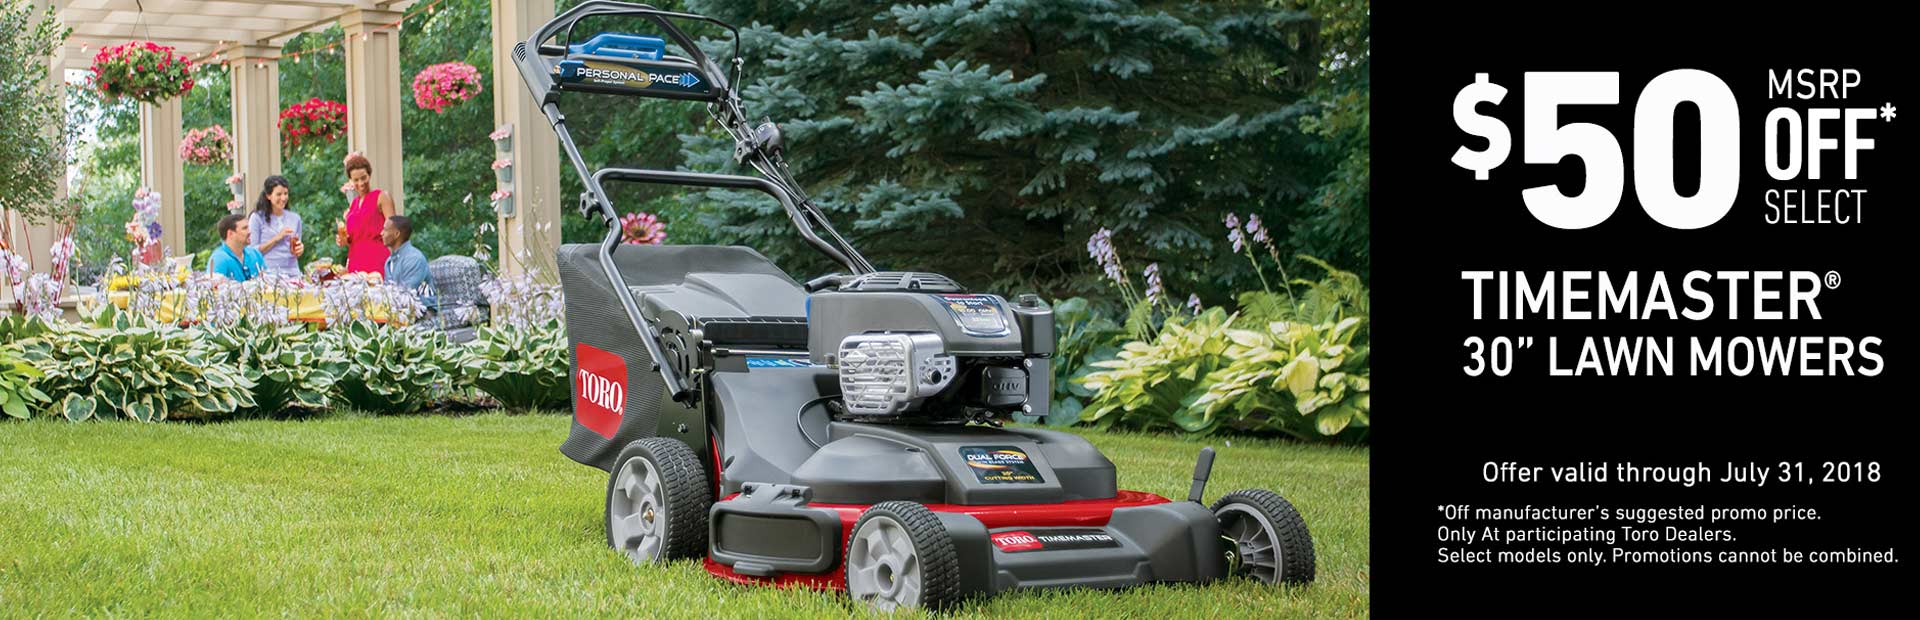 Toro: $50 Off TimeMaster Mowers